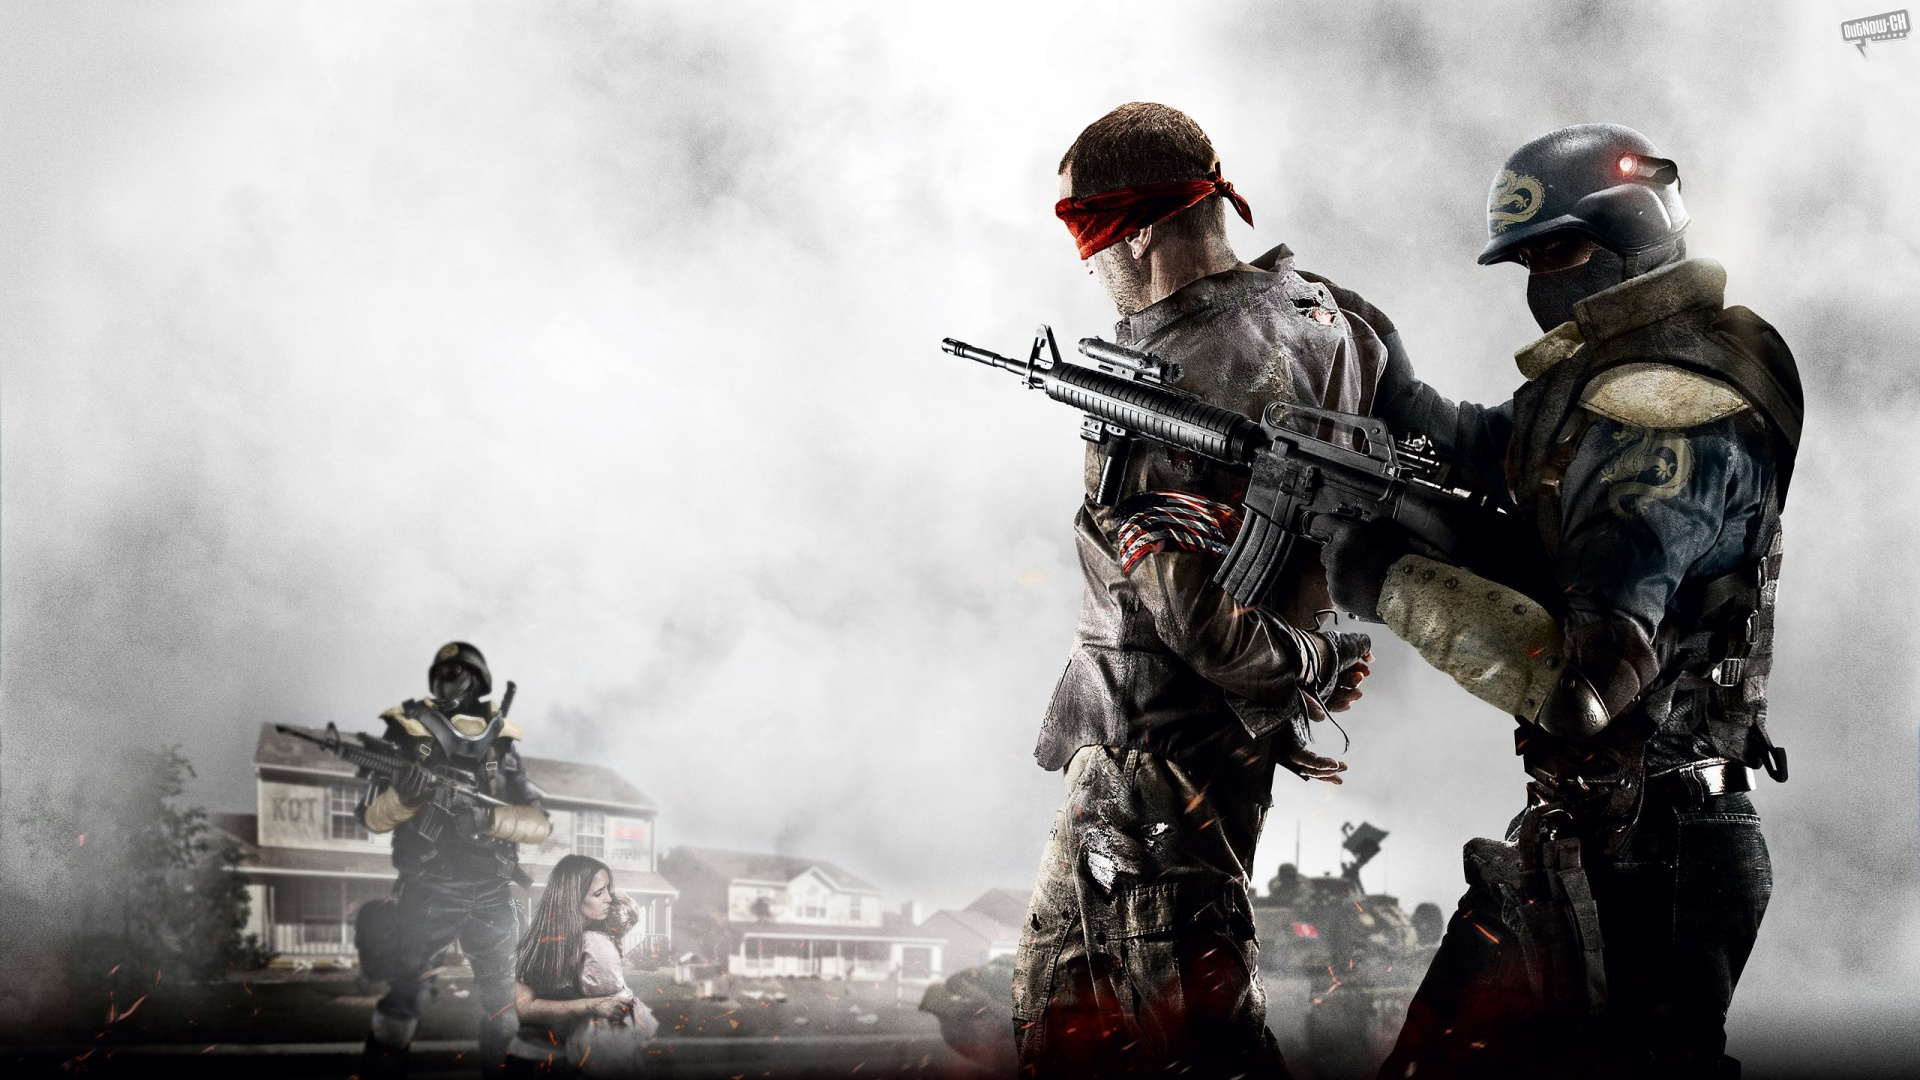 1920x1080 homefront desktop pc and mac wallpaper for Homefront wallpaper